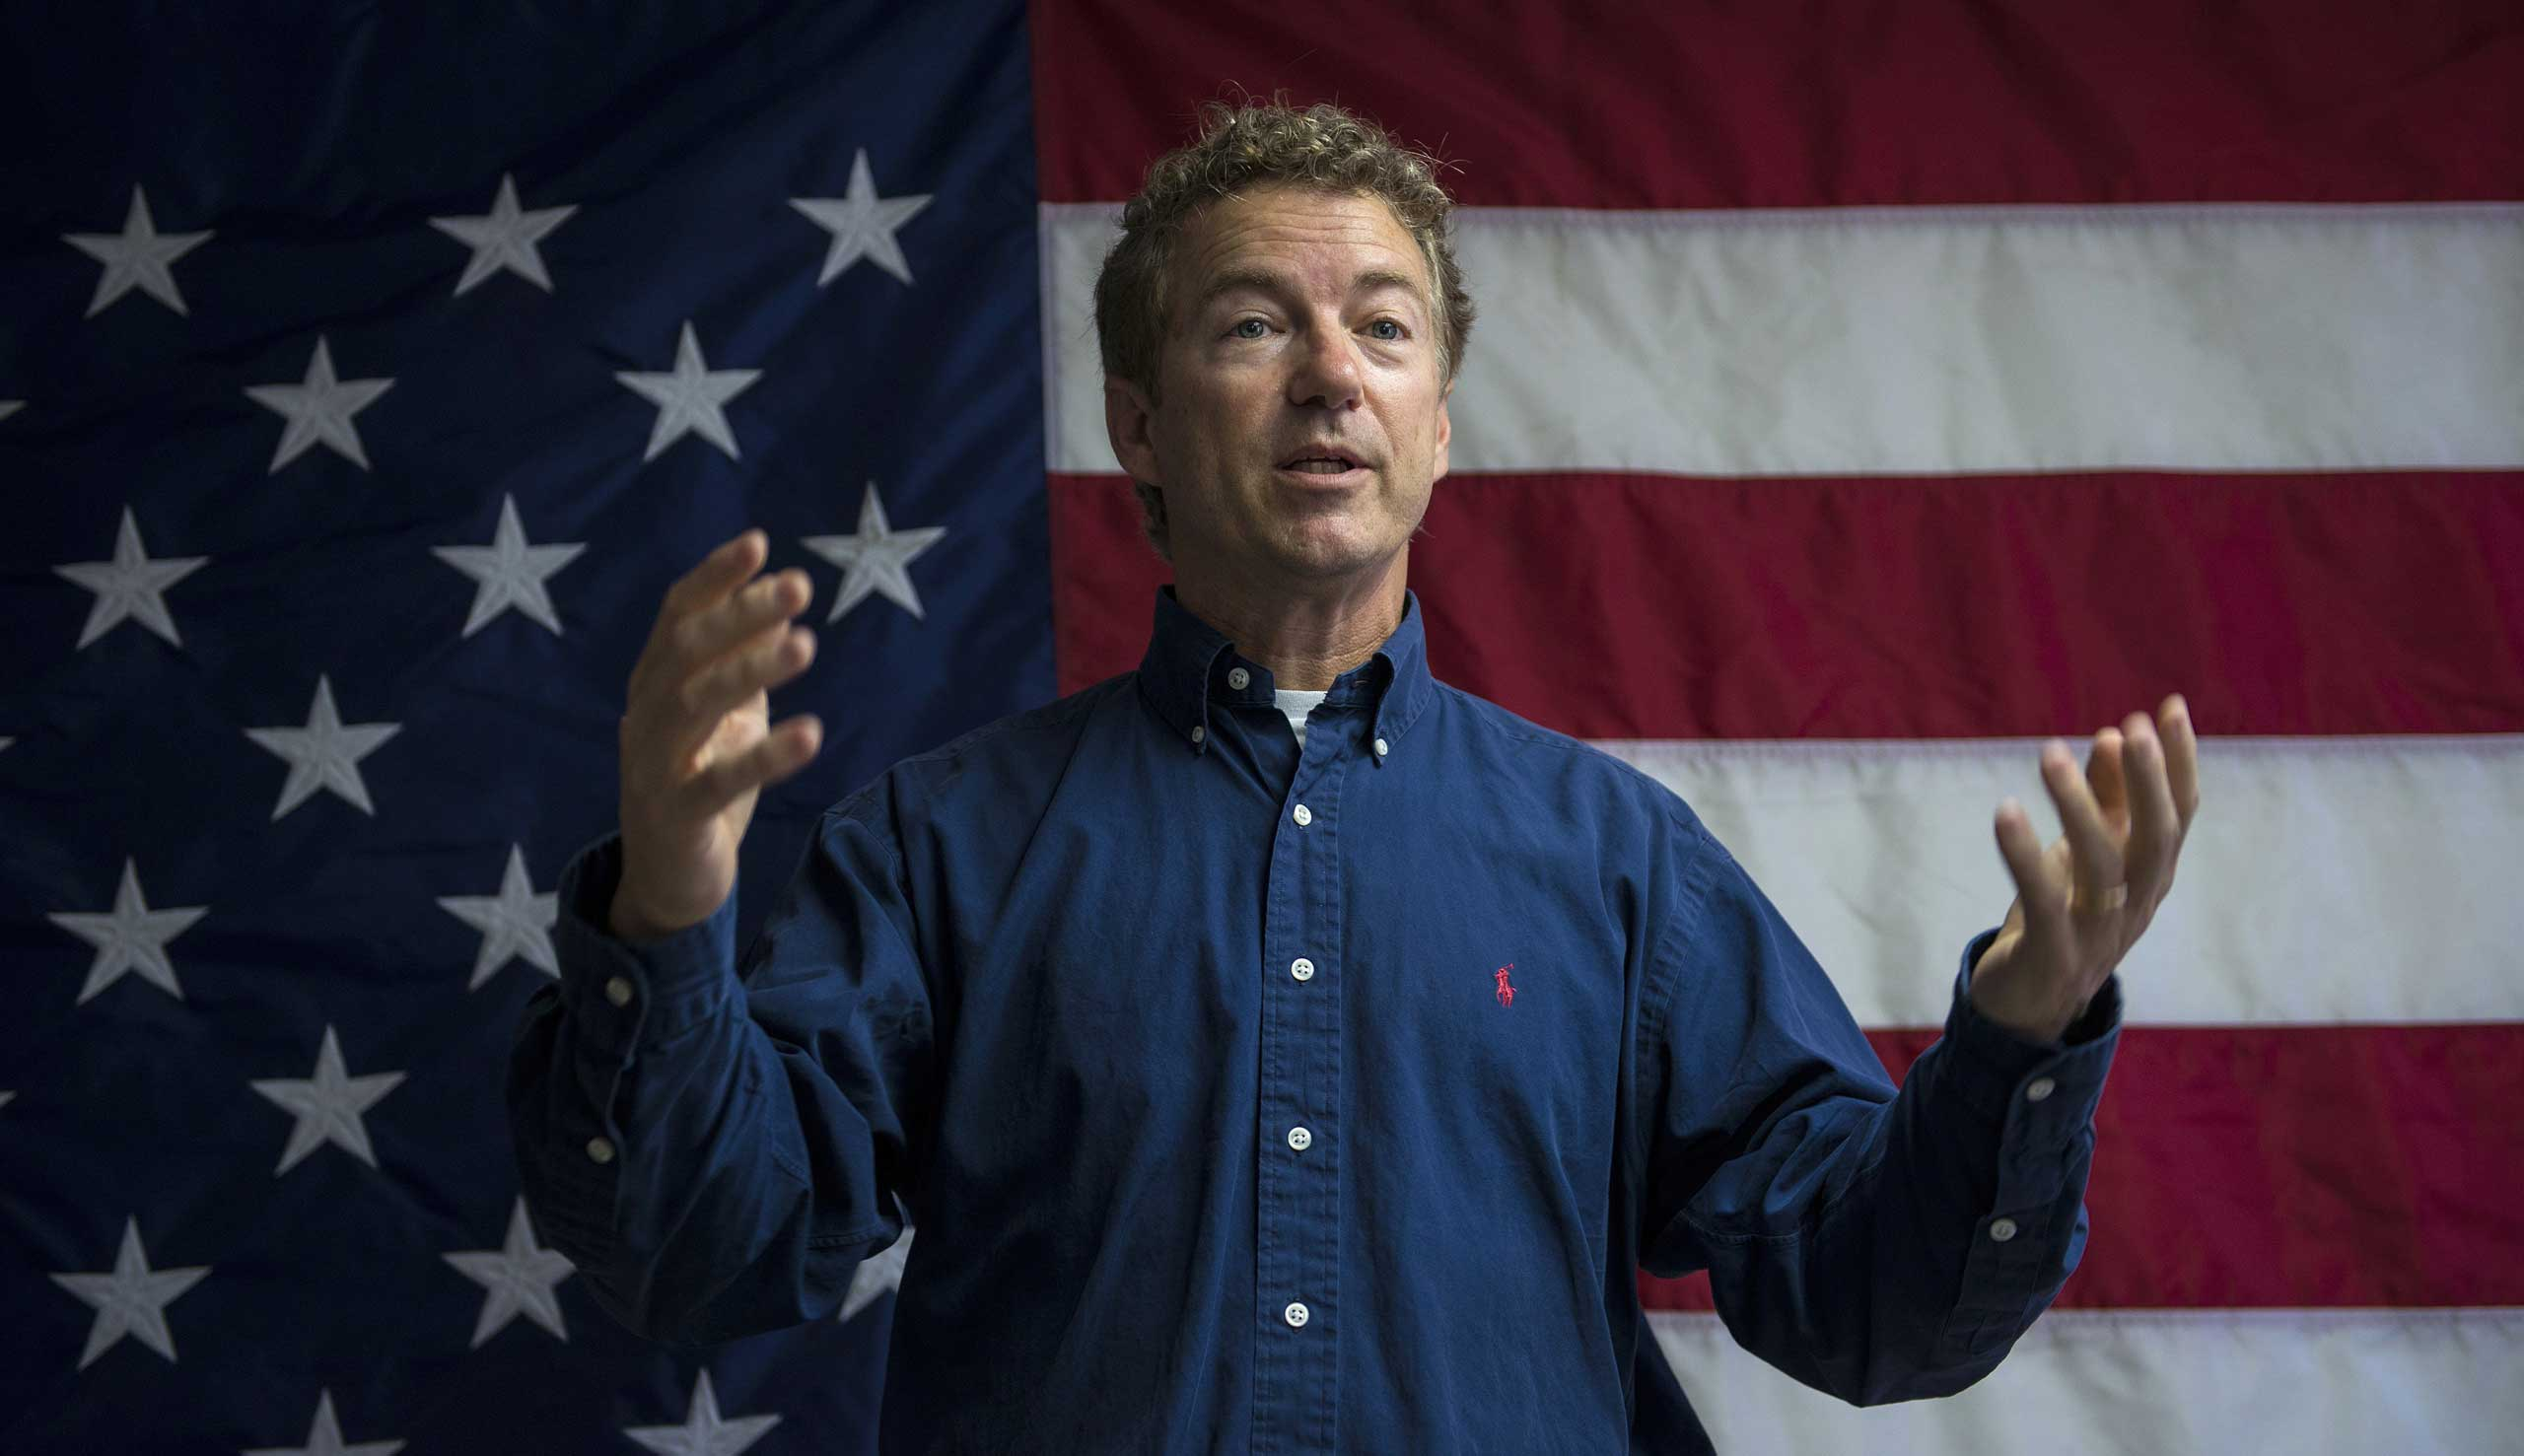 Republican presidential candidate and US Senator Rand Paul (R-TN) at the opening of his New Hampshire campaign office in Manchester, NH on June 5, 2015.